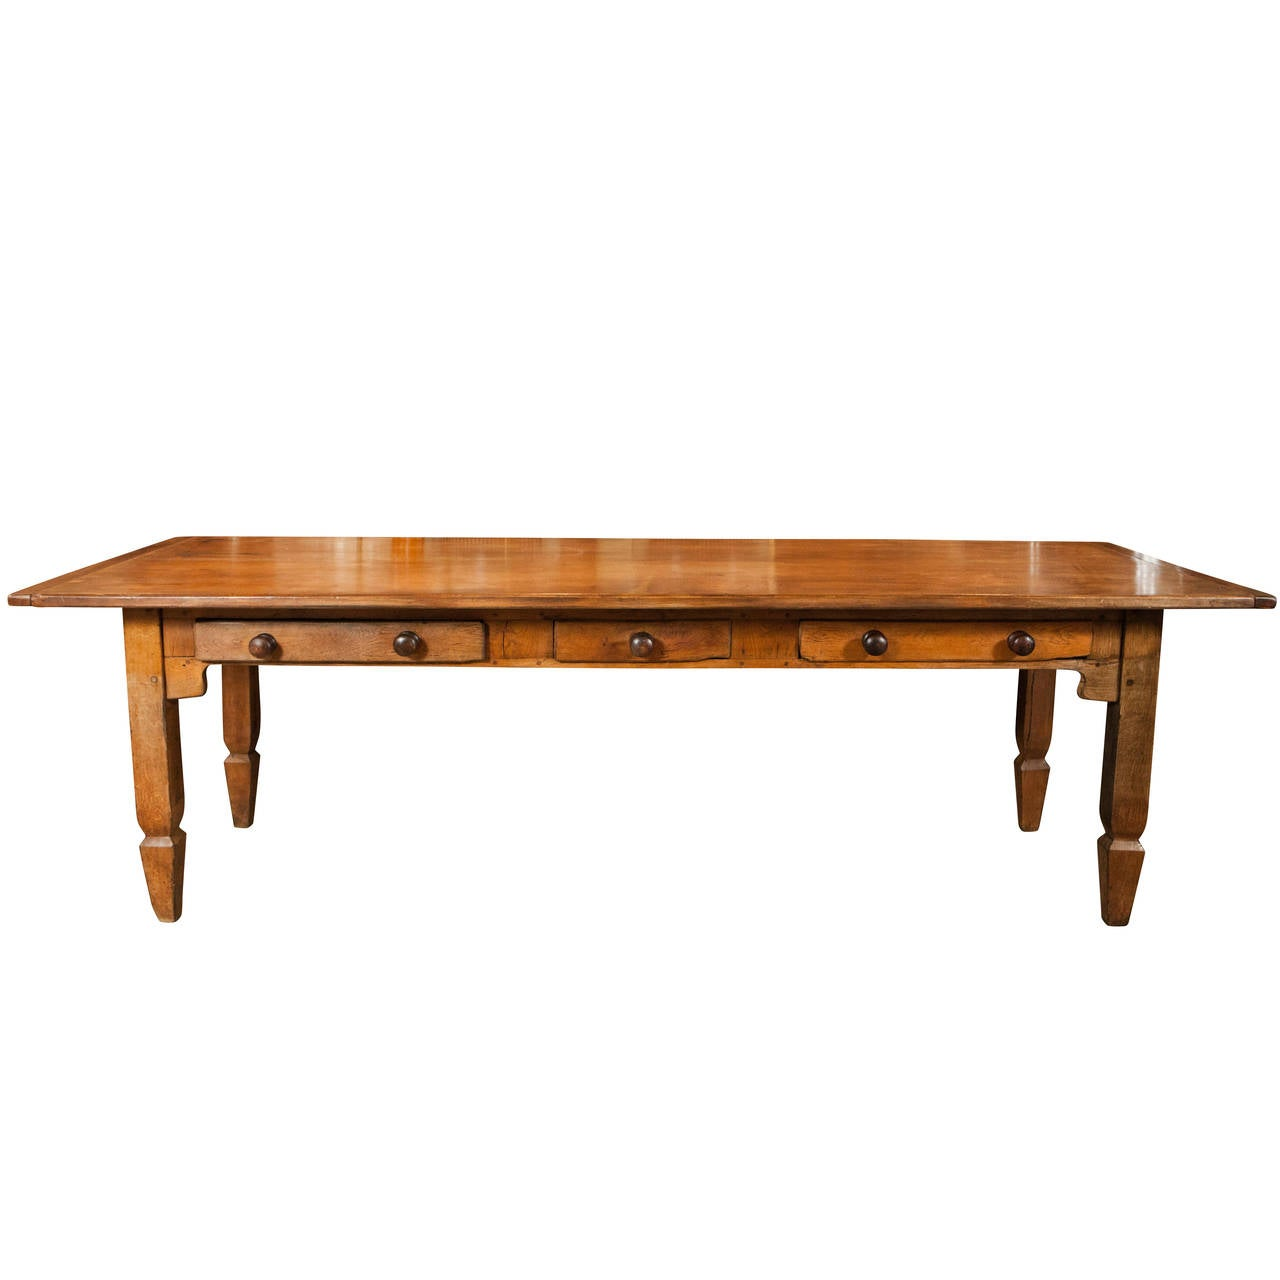 Long Country Dining or Work Table